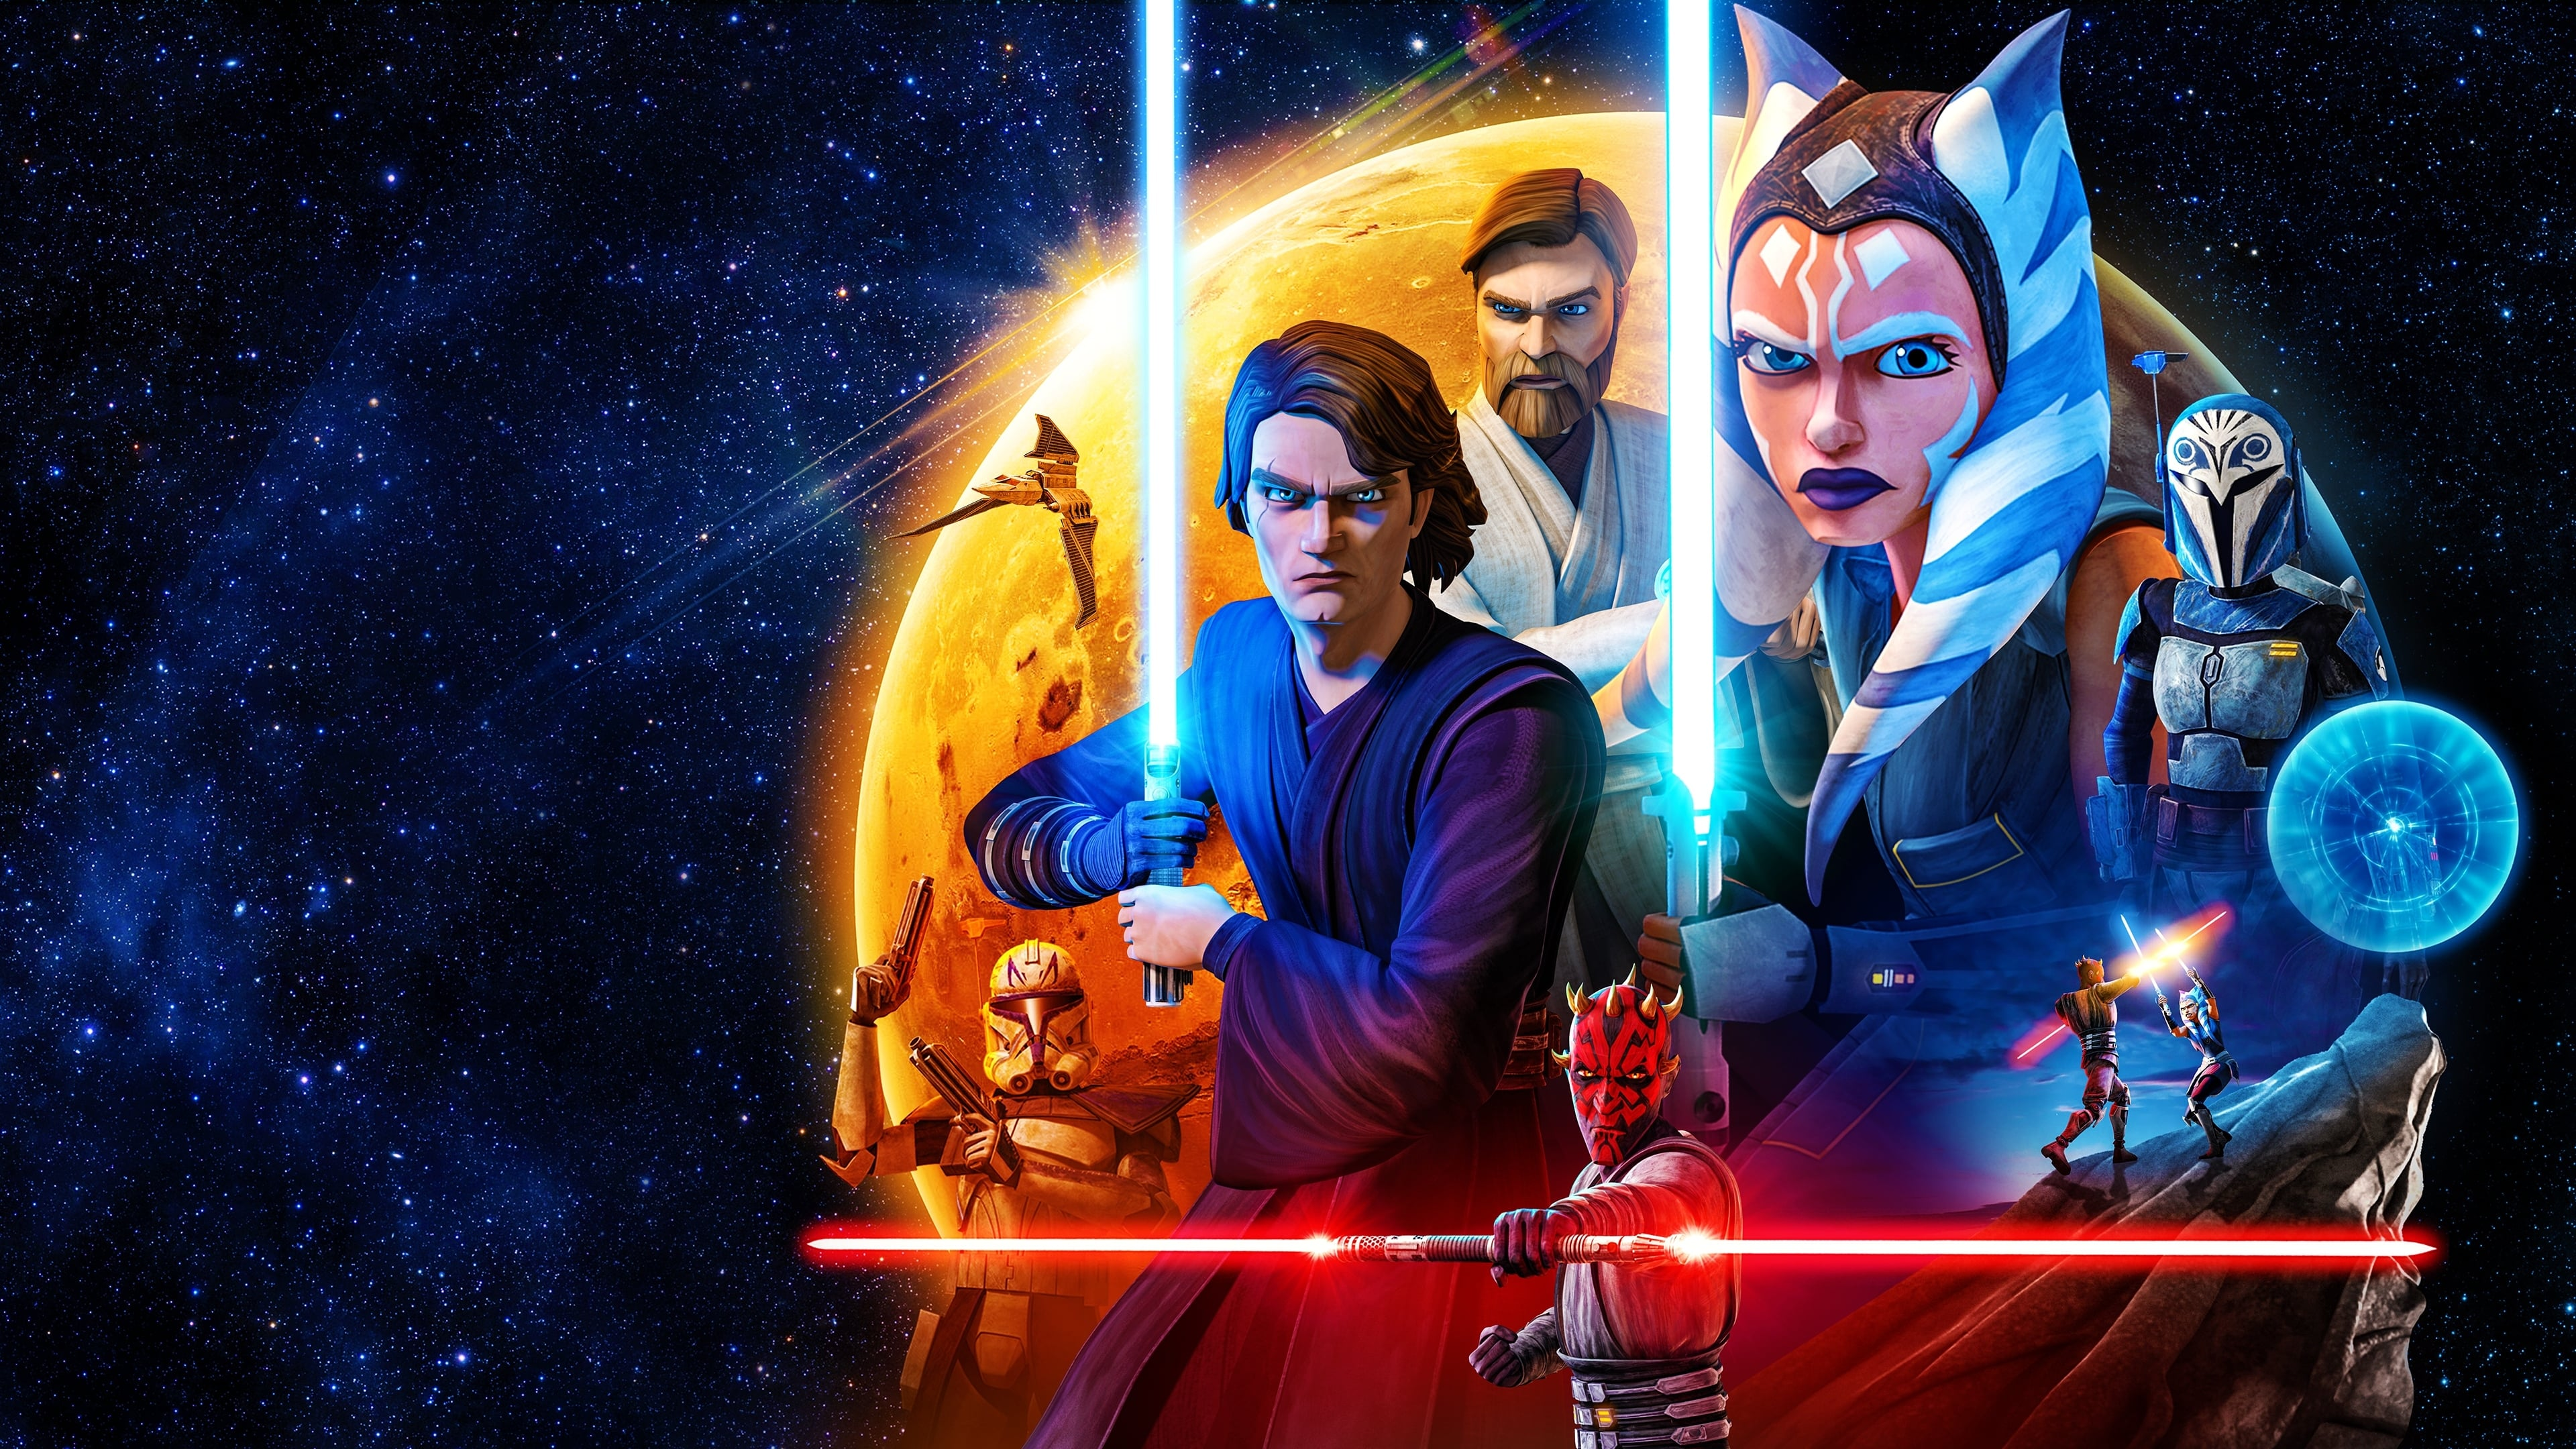 Final season Star Wars: The Clone Wars will release on Disney+ soon